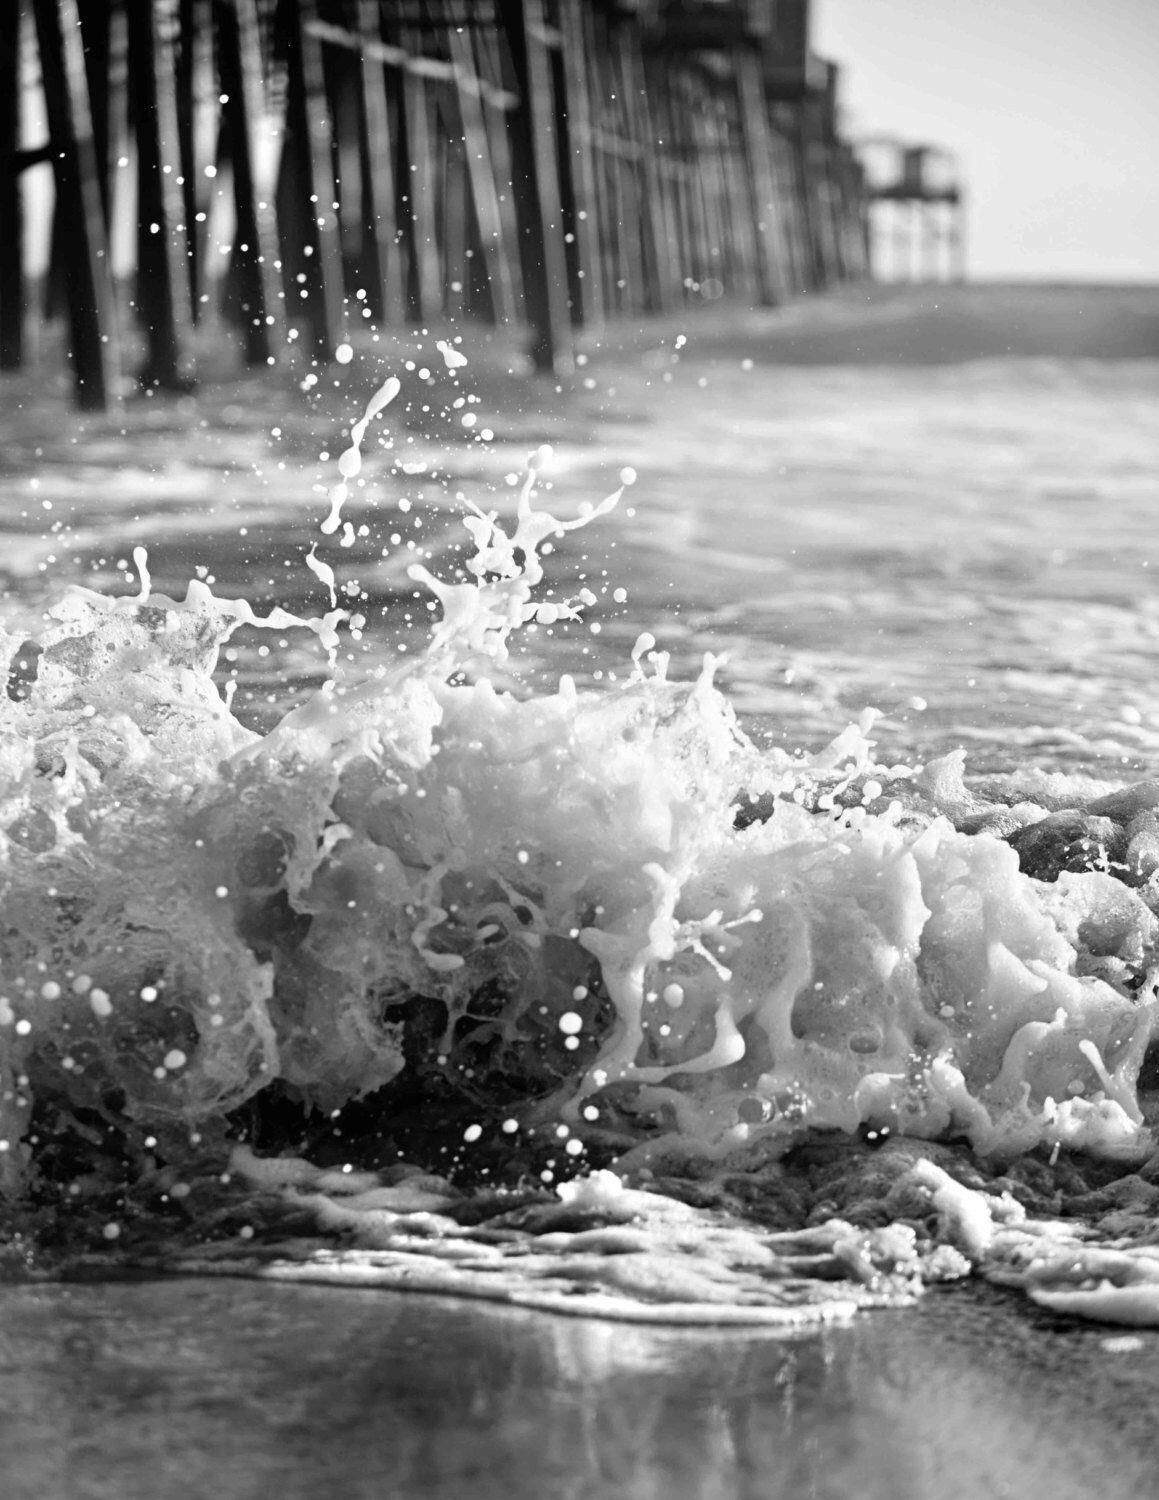 Black and White Pier Ocean Photography  Wave Splash Texture | Etsy